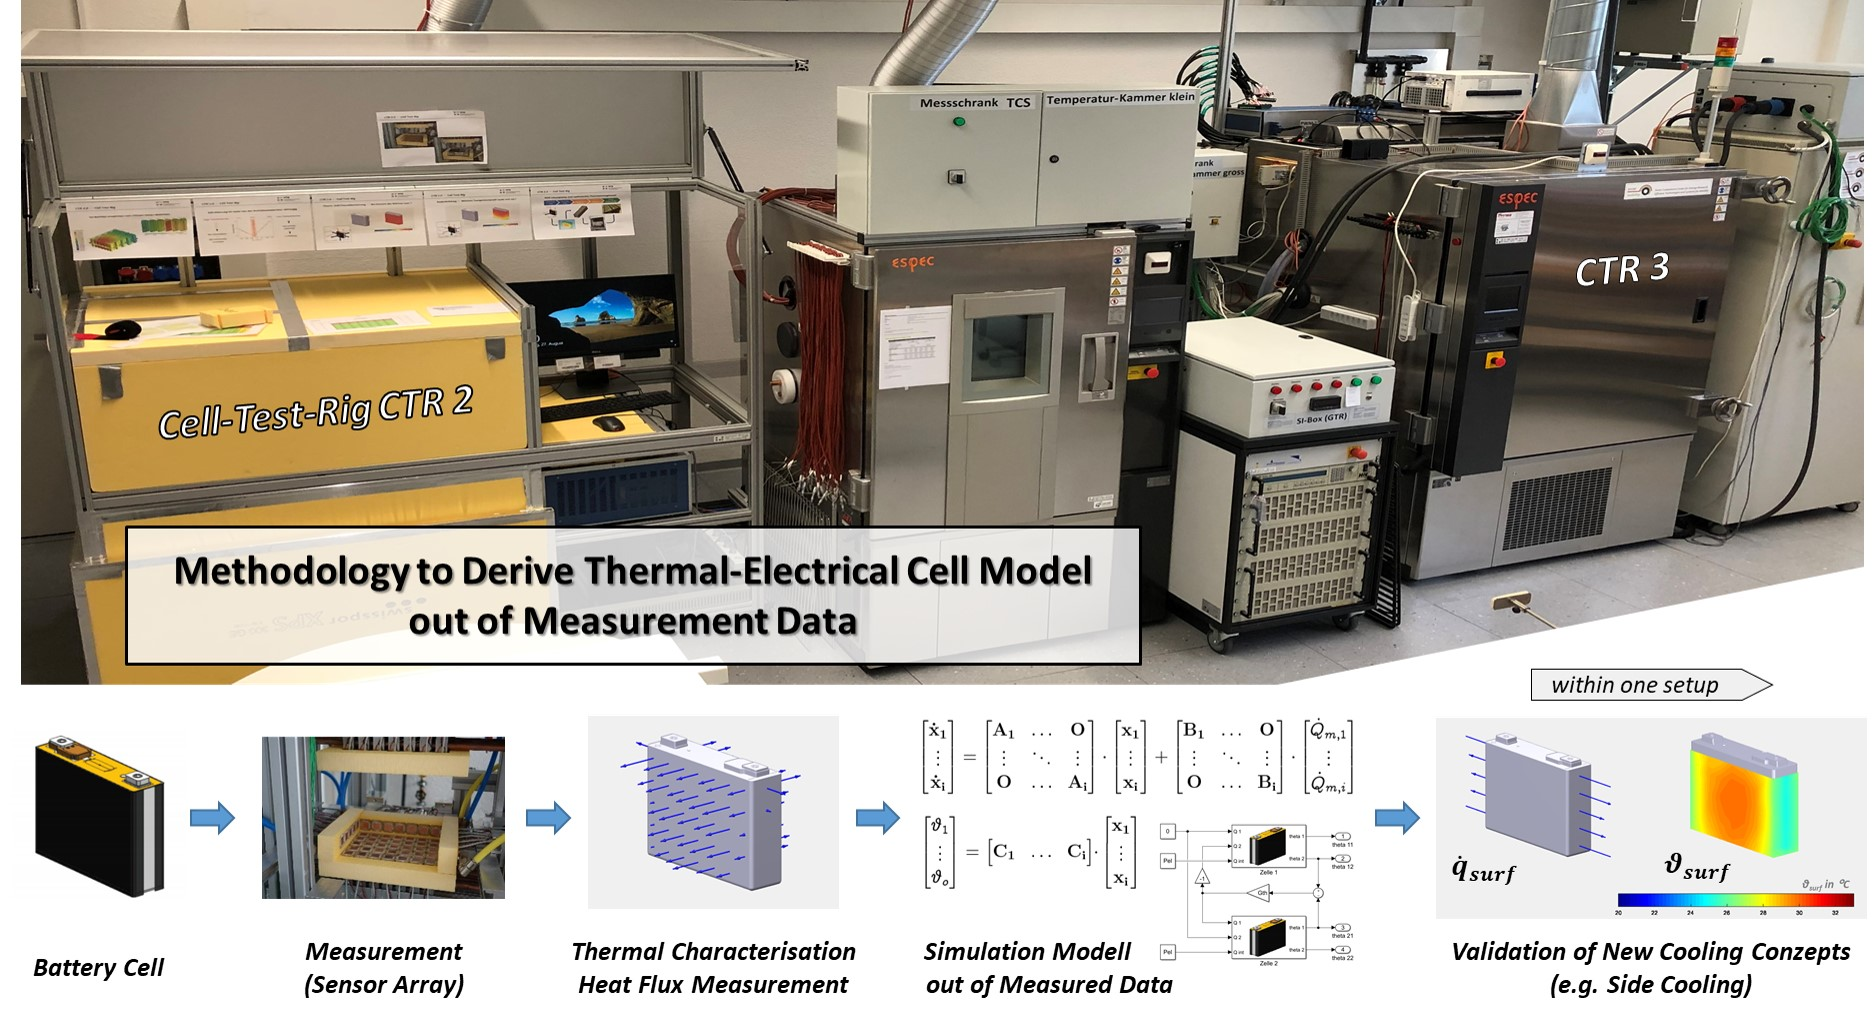 Methodology to Derive Thermal-Electrical Cell Model out of Measurement Data